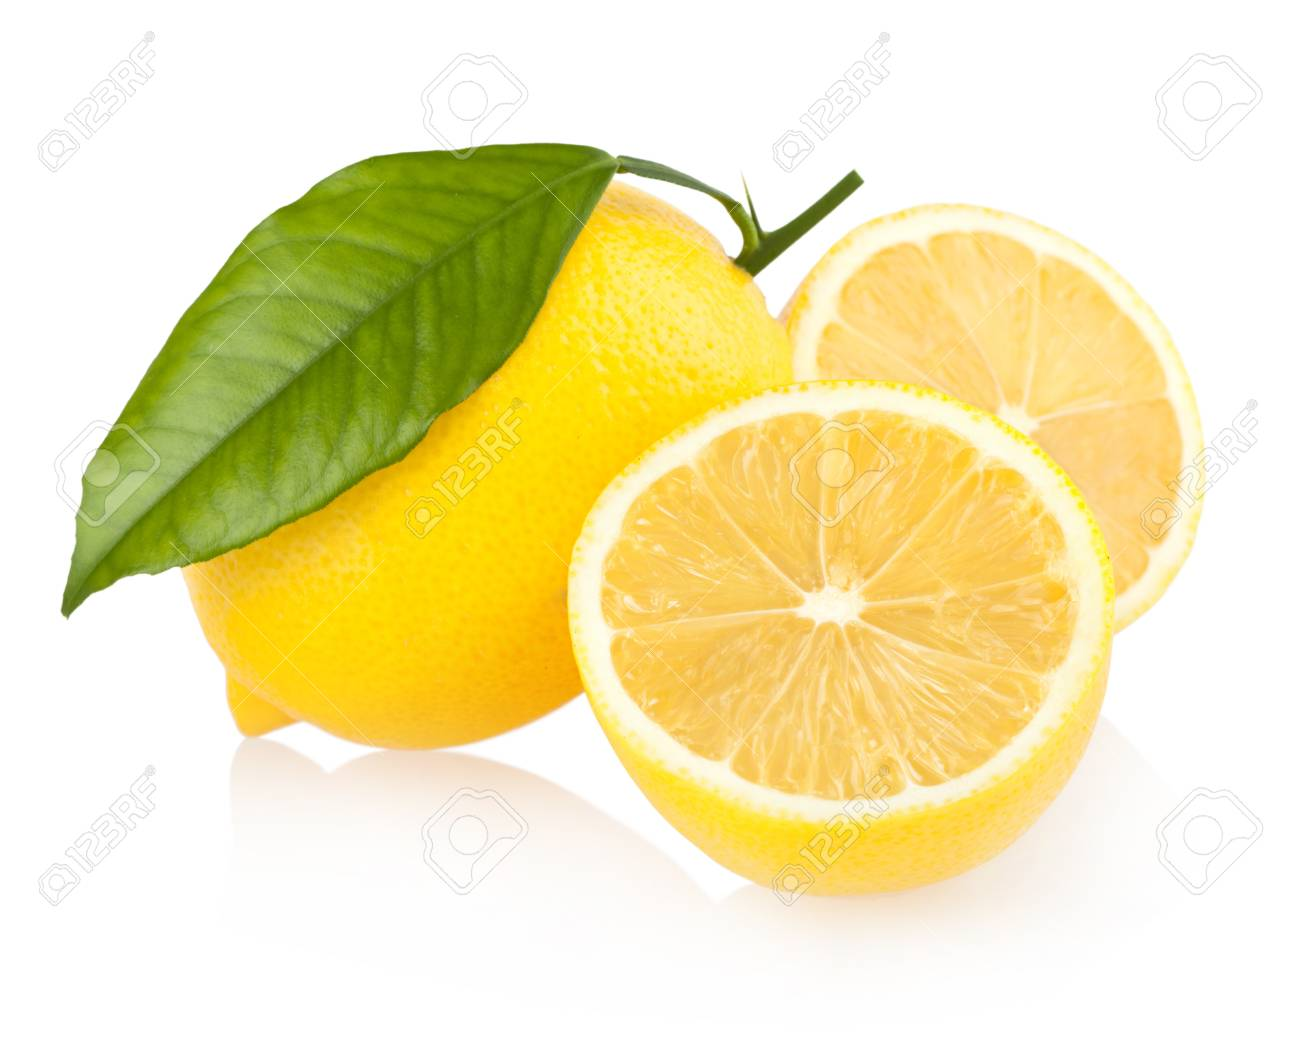 ripe lemons Stock Photo - 13013942